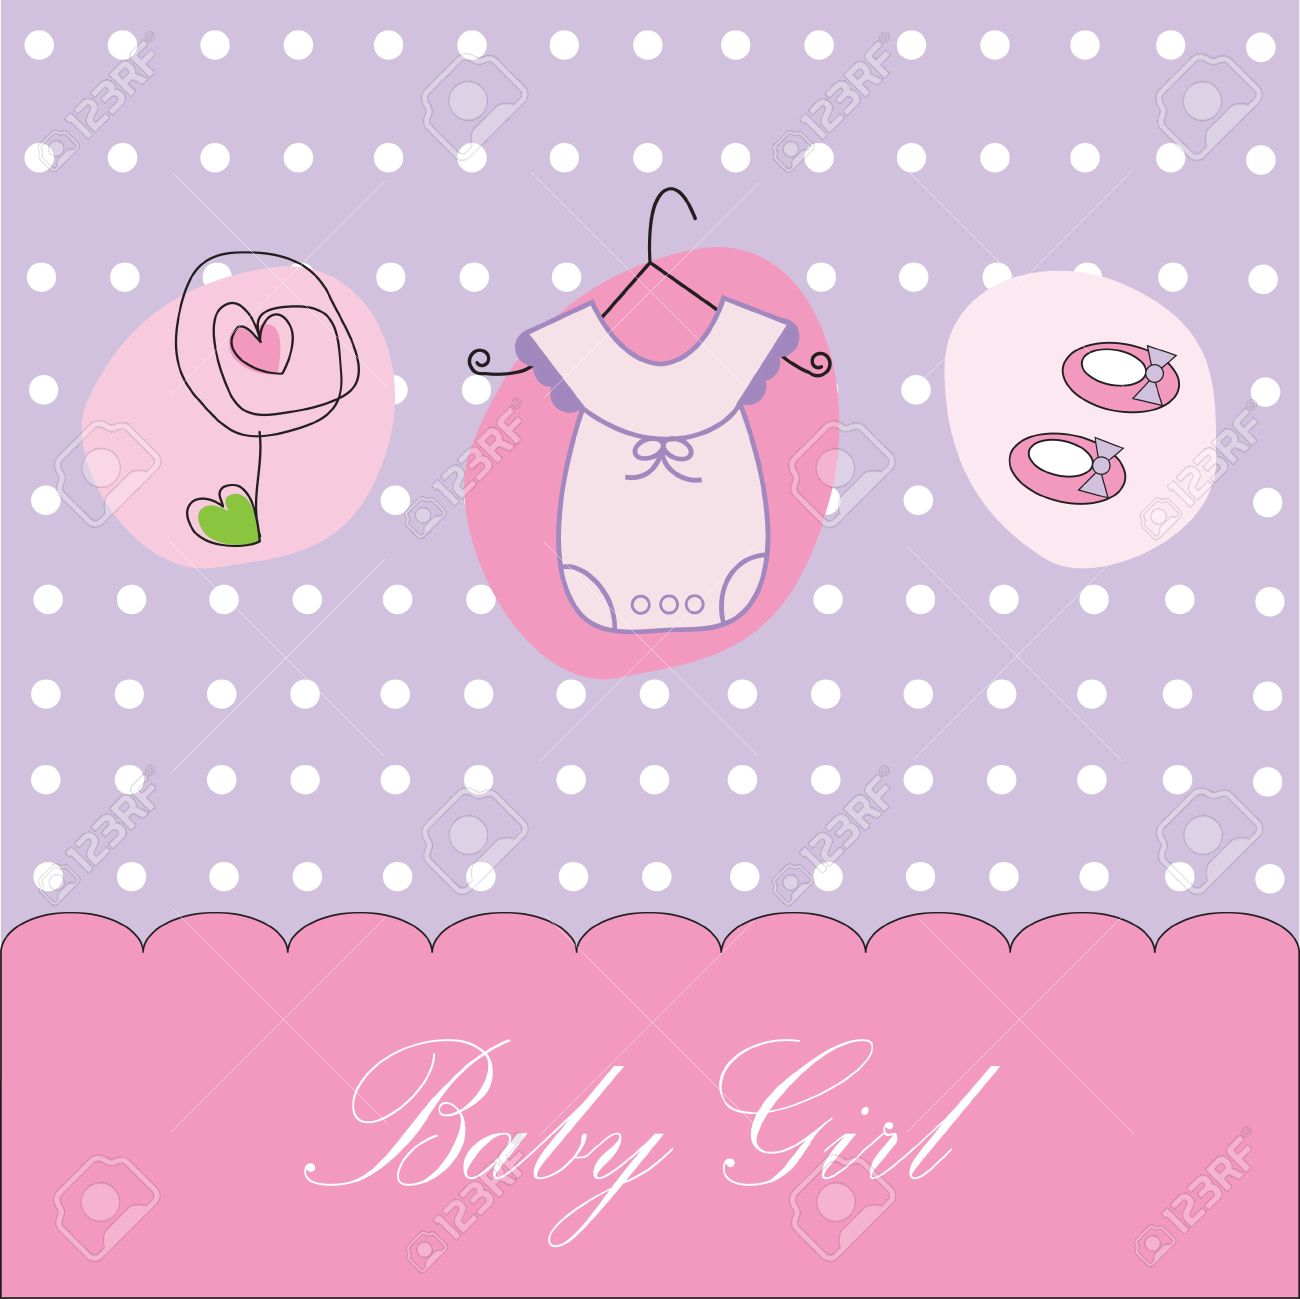 Baby Girl Background Stock Vector   9419728